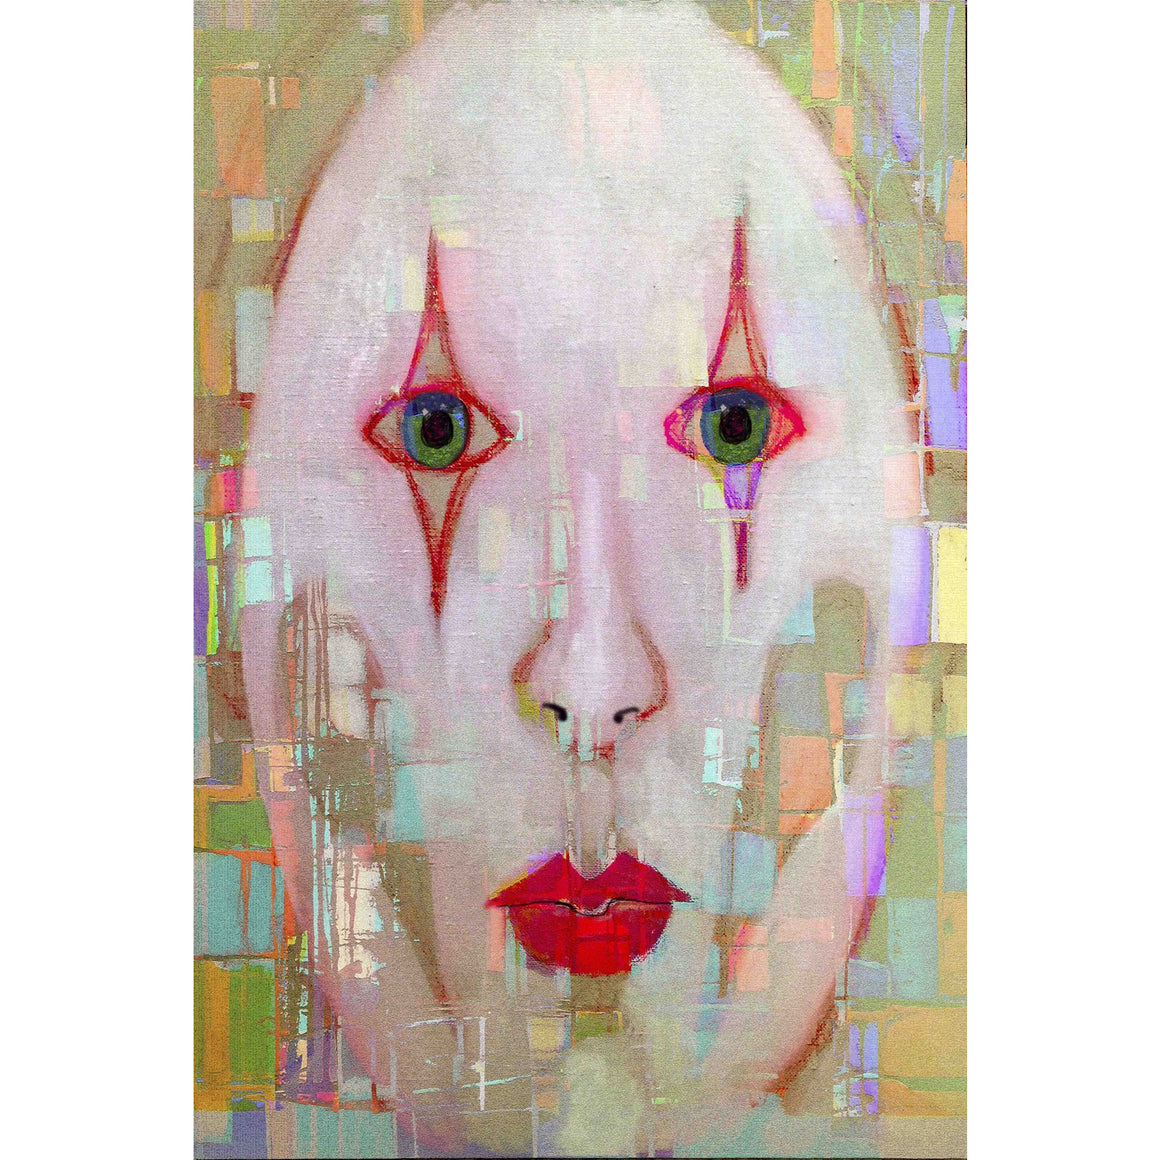 "'Face 11'  Digital Collage Limited Edition Fine Art Painting 40"" x 30"""